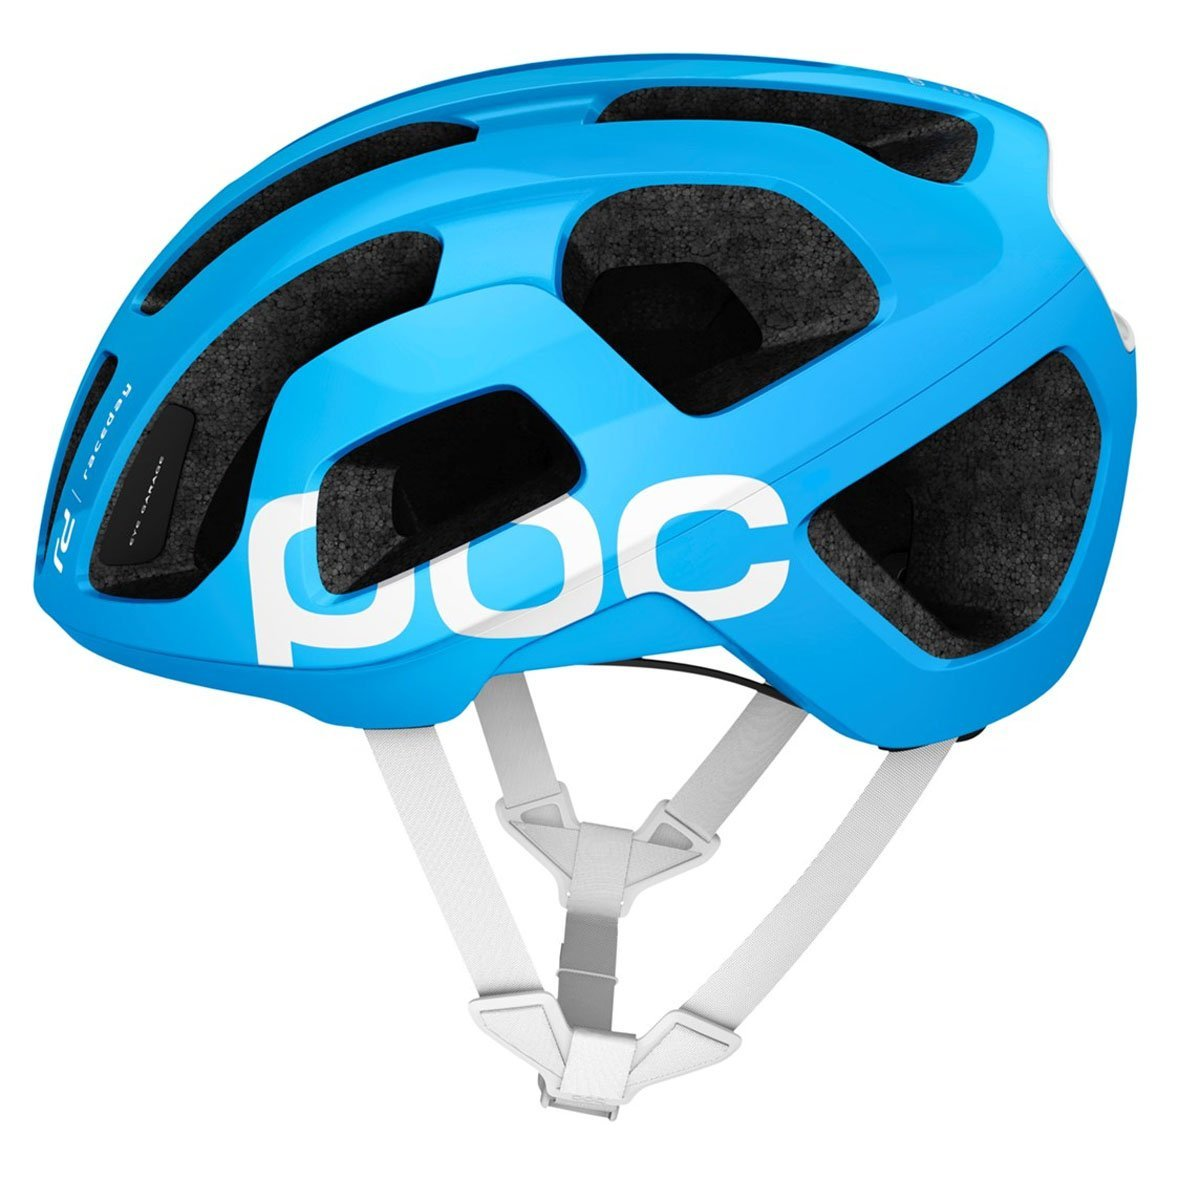 Large POC Bicycle Helmets